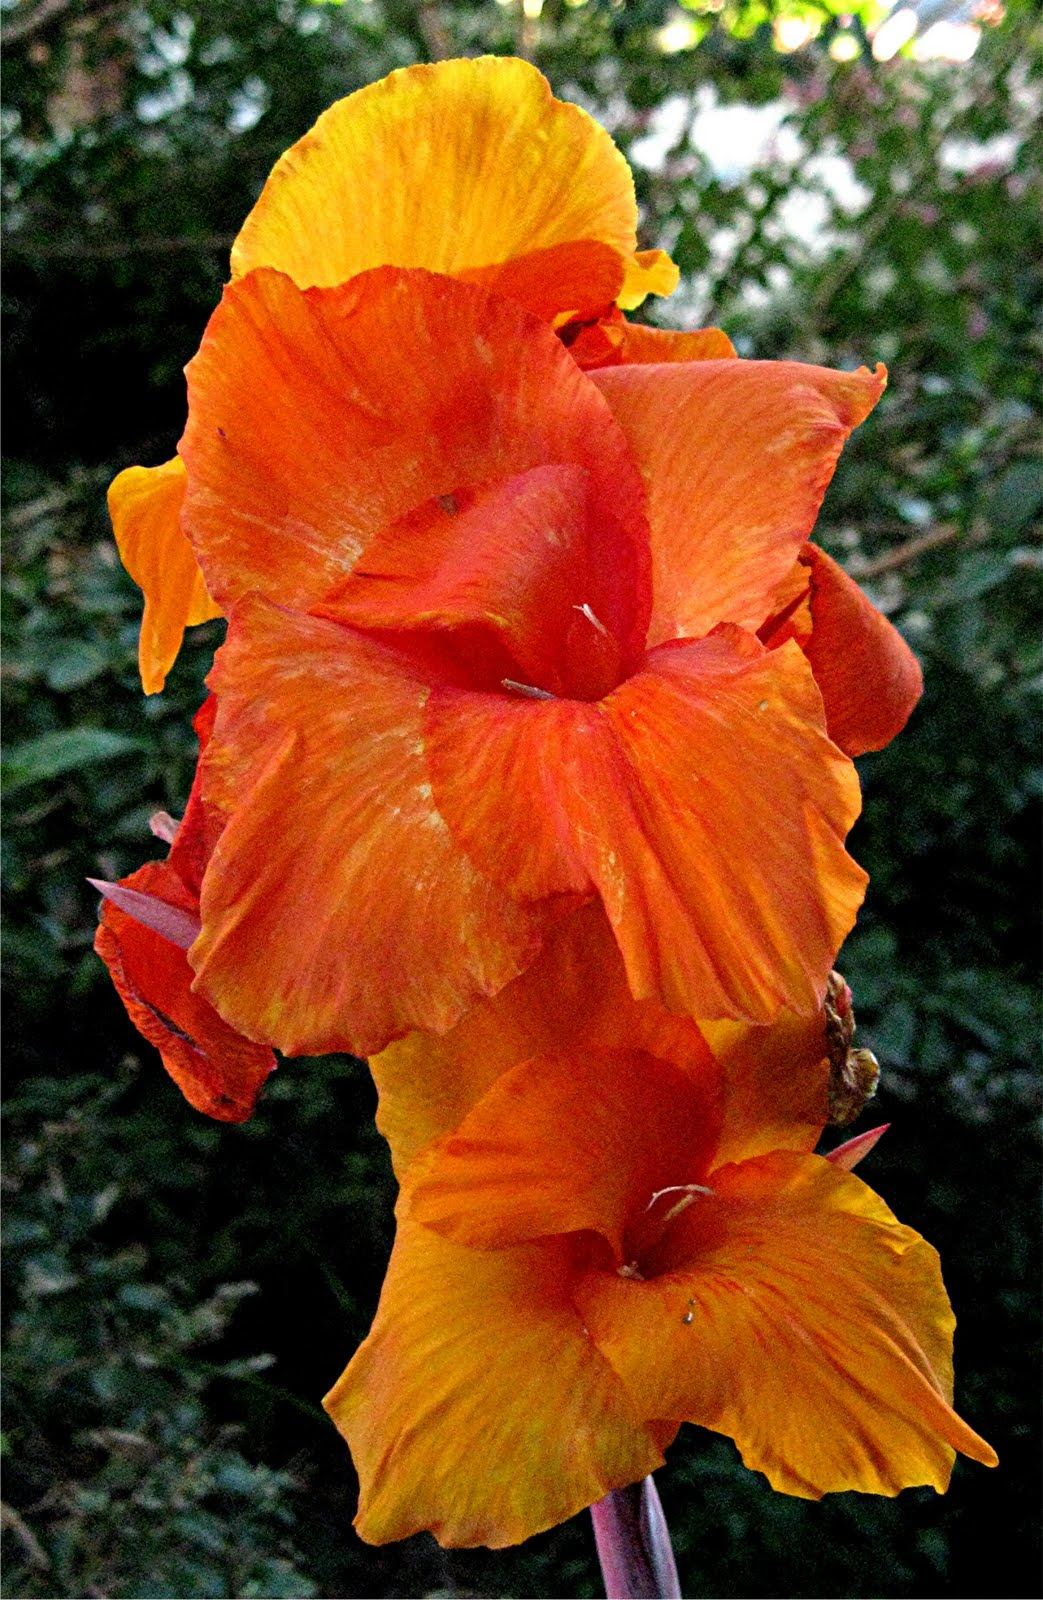 1003 gardens i like the big outrageous flowers of late summer canna 39 bengal tiger 39 datura. Black Bedroom Furniture Sets. Home Design Ideas